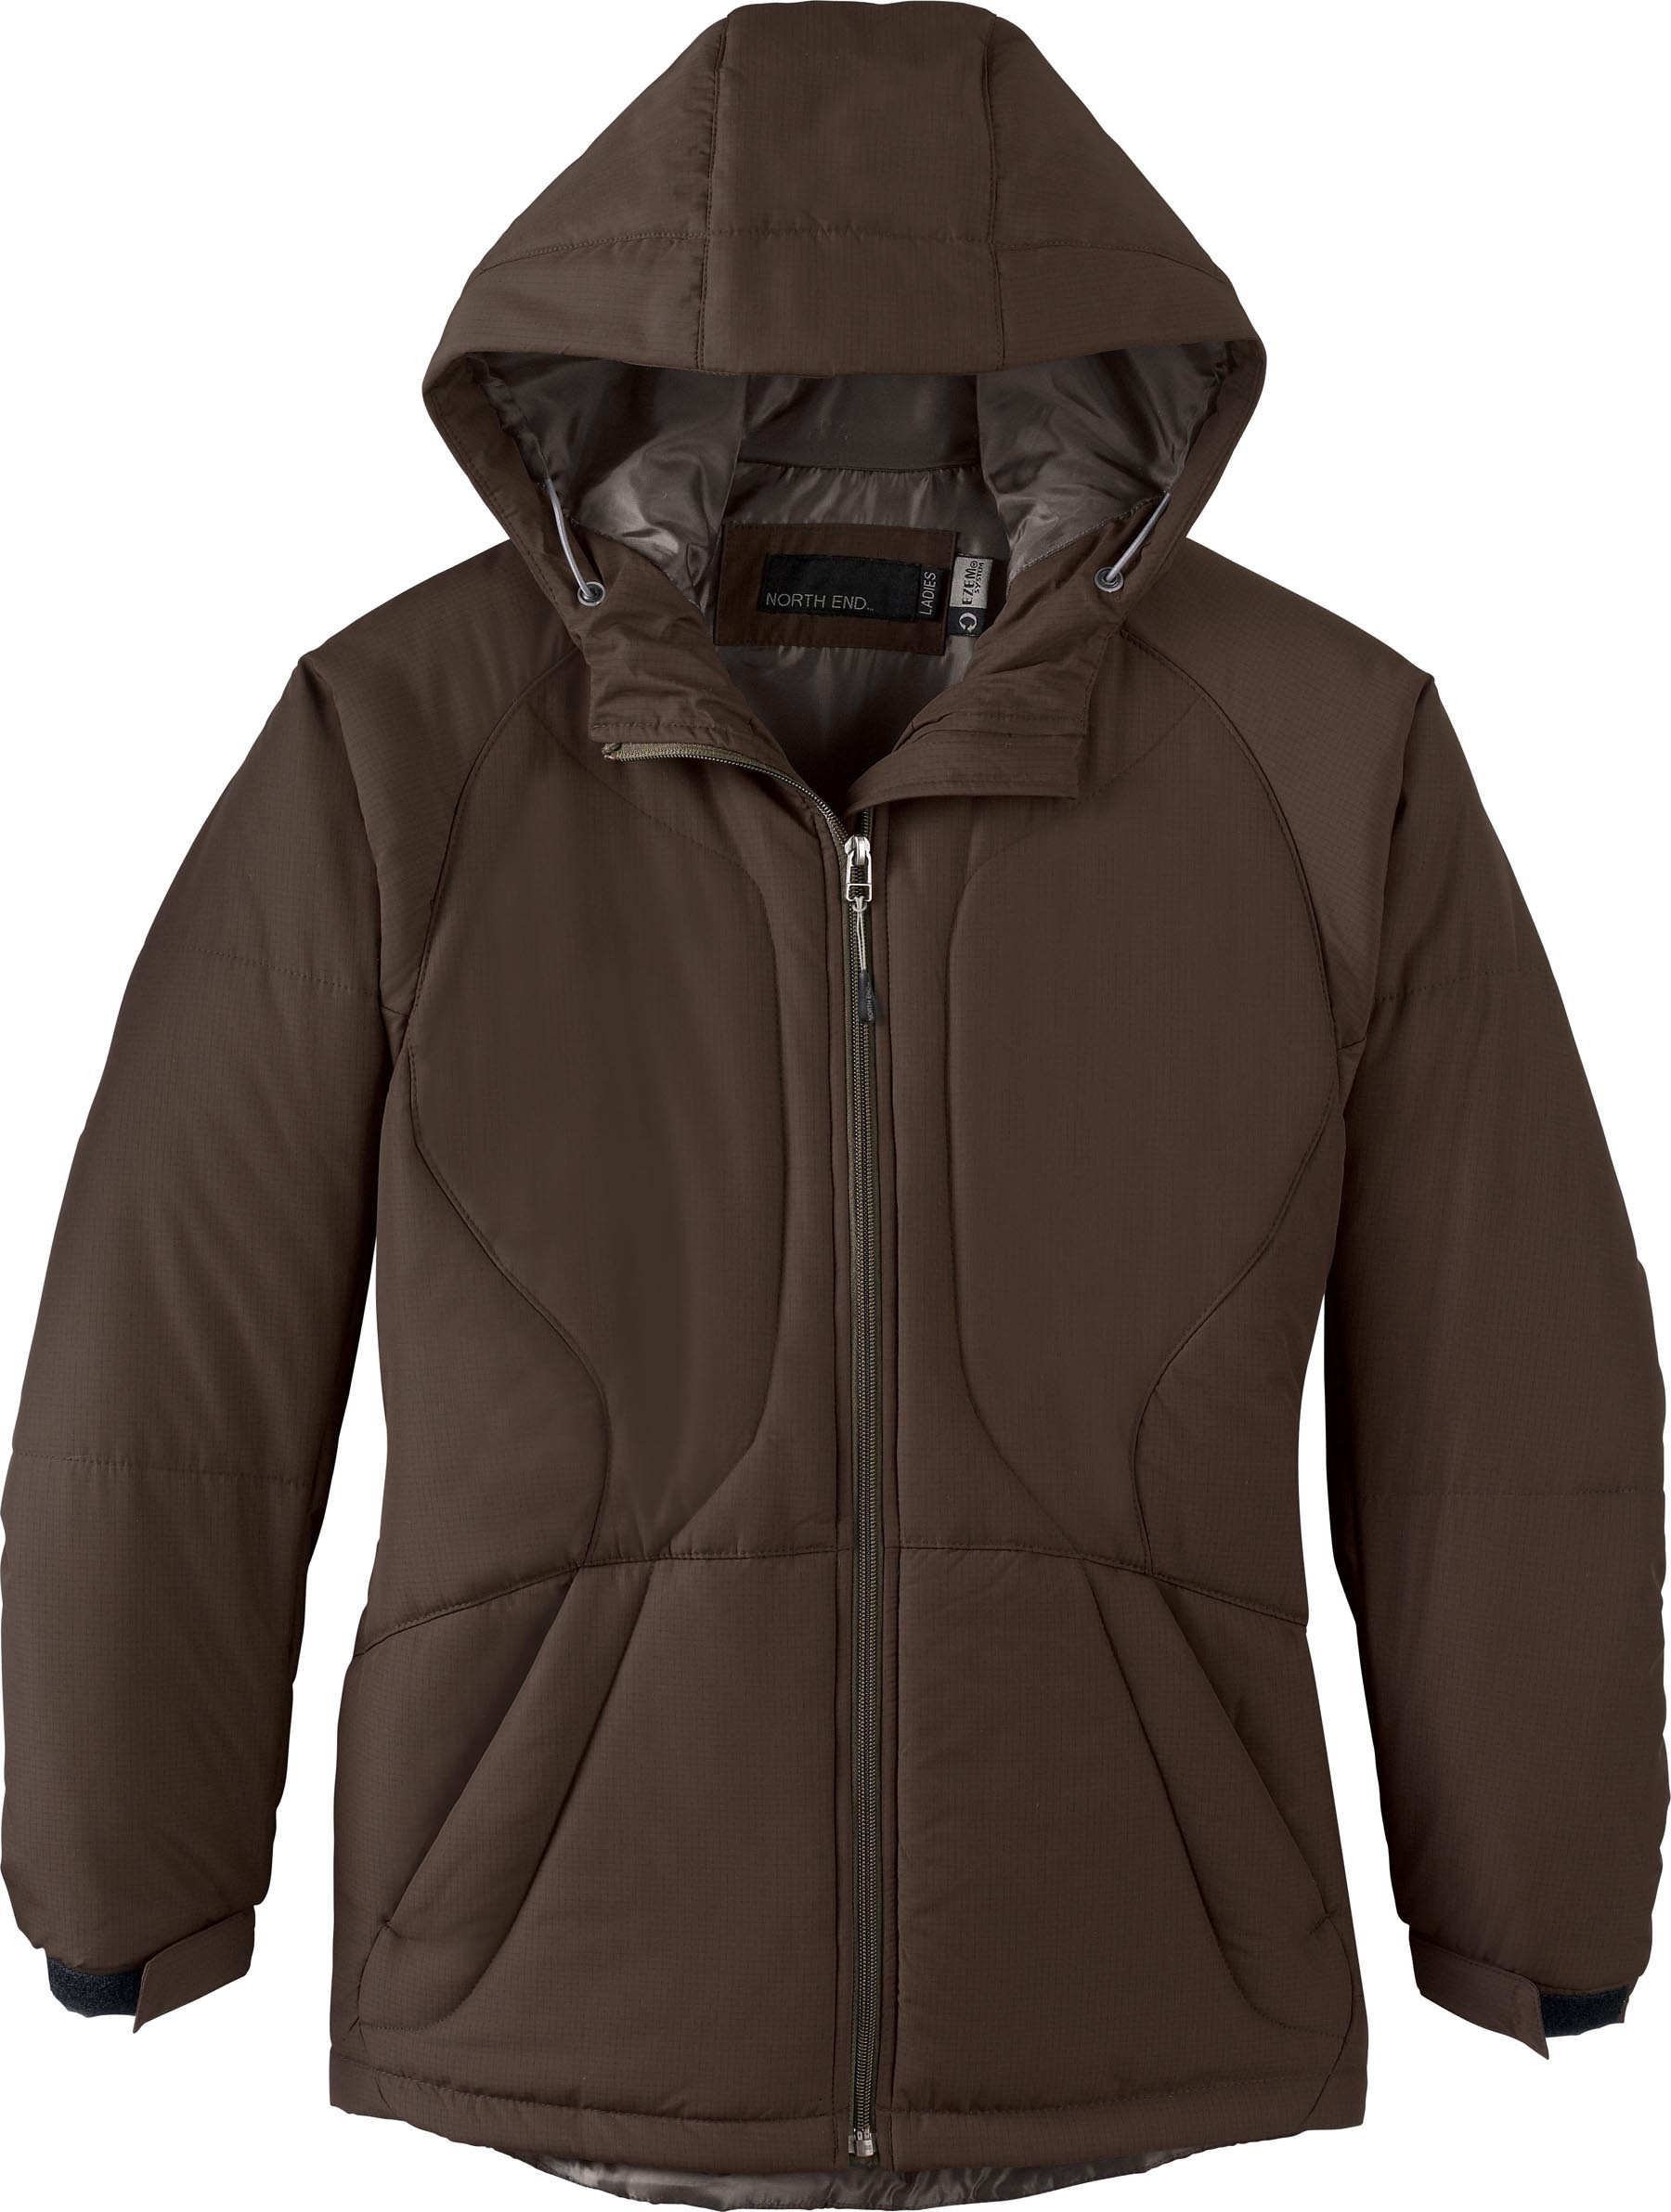 Ash City UTK 3 Warm.Logik 78082 - Ladies Polyester Ripstop ...